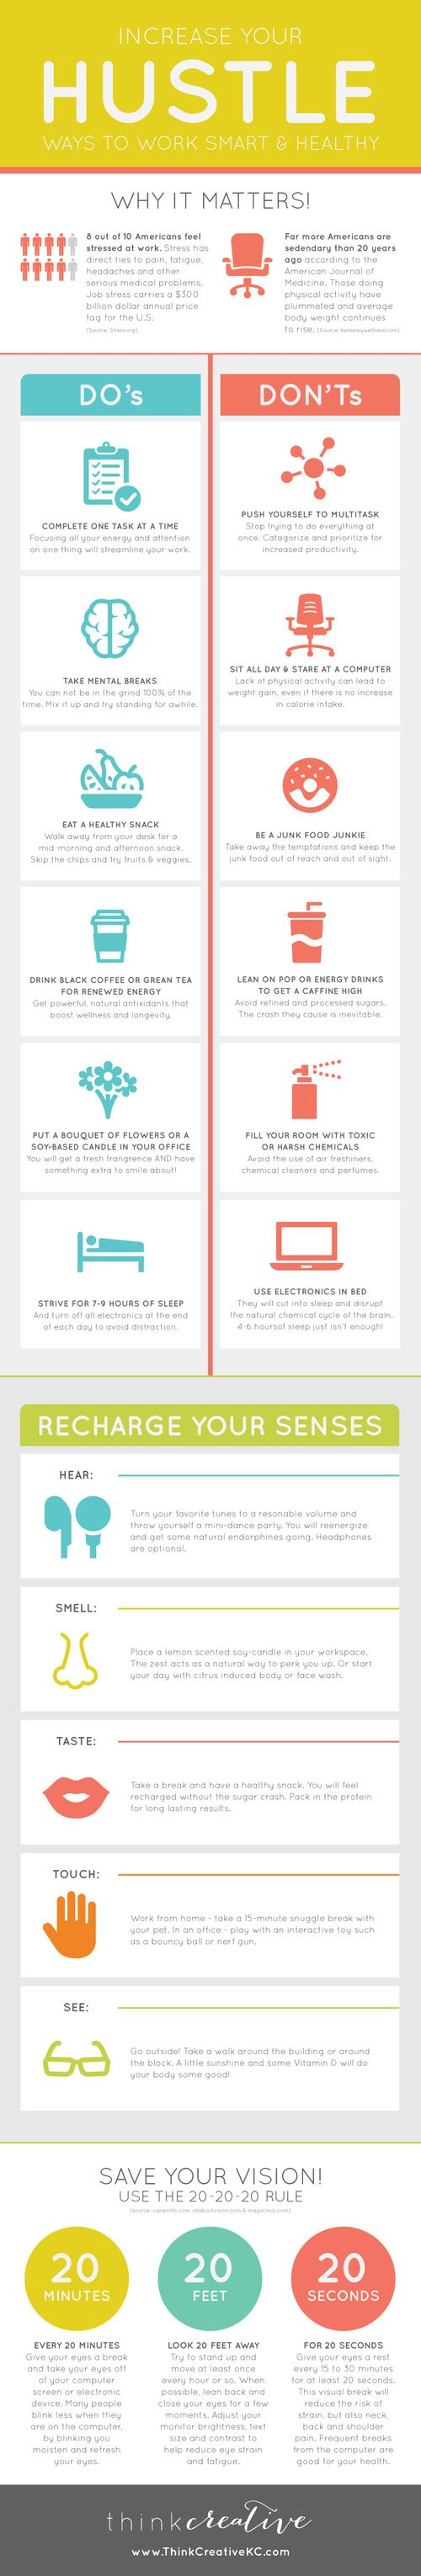 10 steps how to use stress to increase your productivity motivate - Increase Your Hustle With Ways To Work Smart Healthy